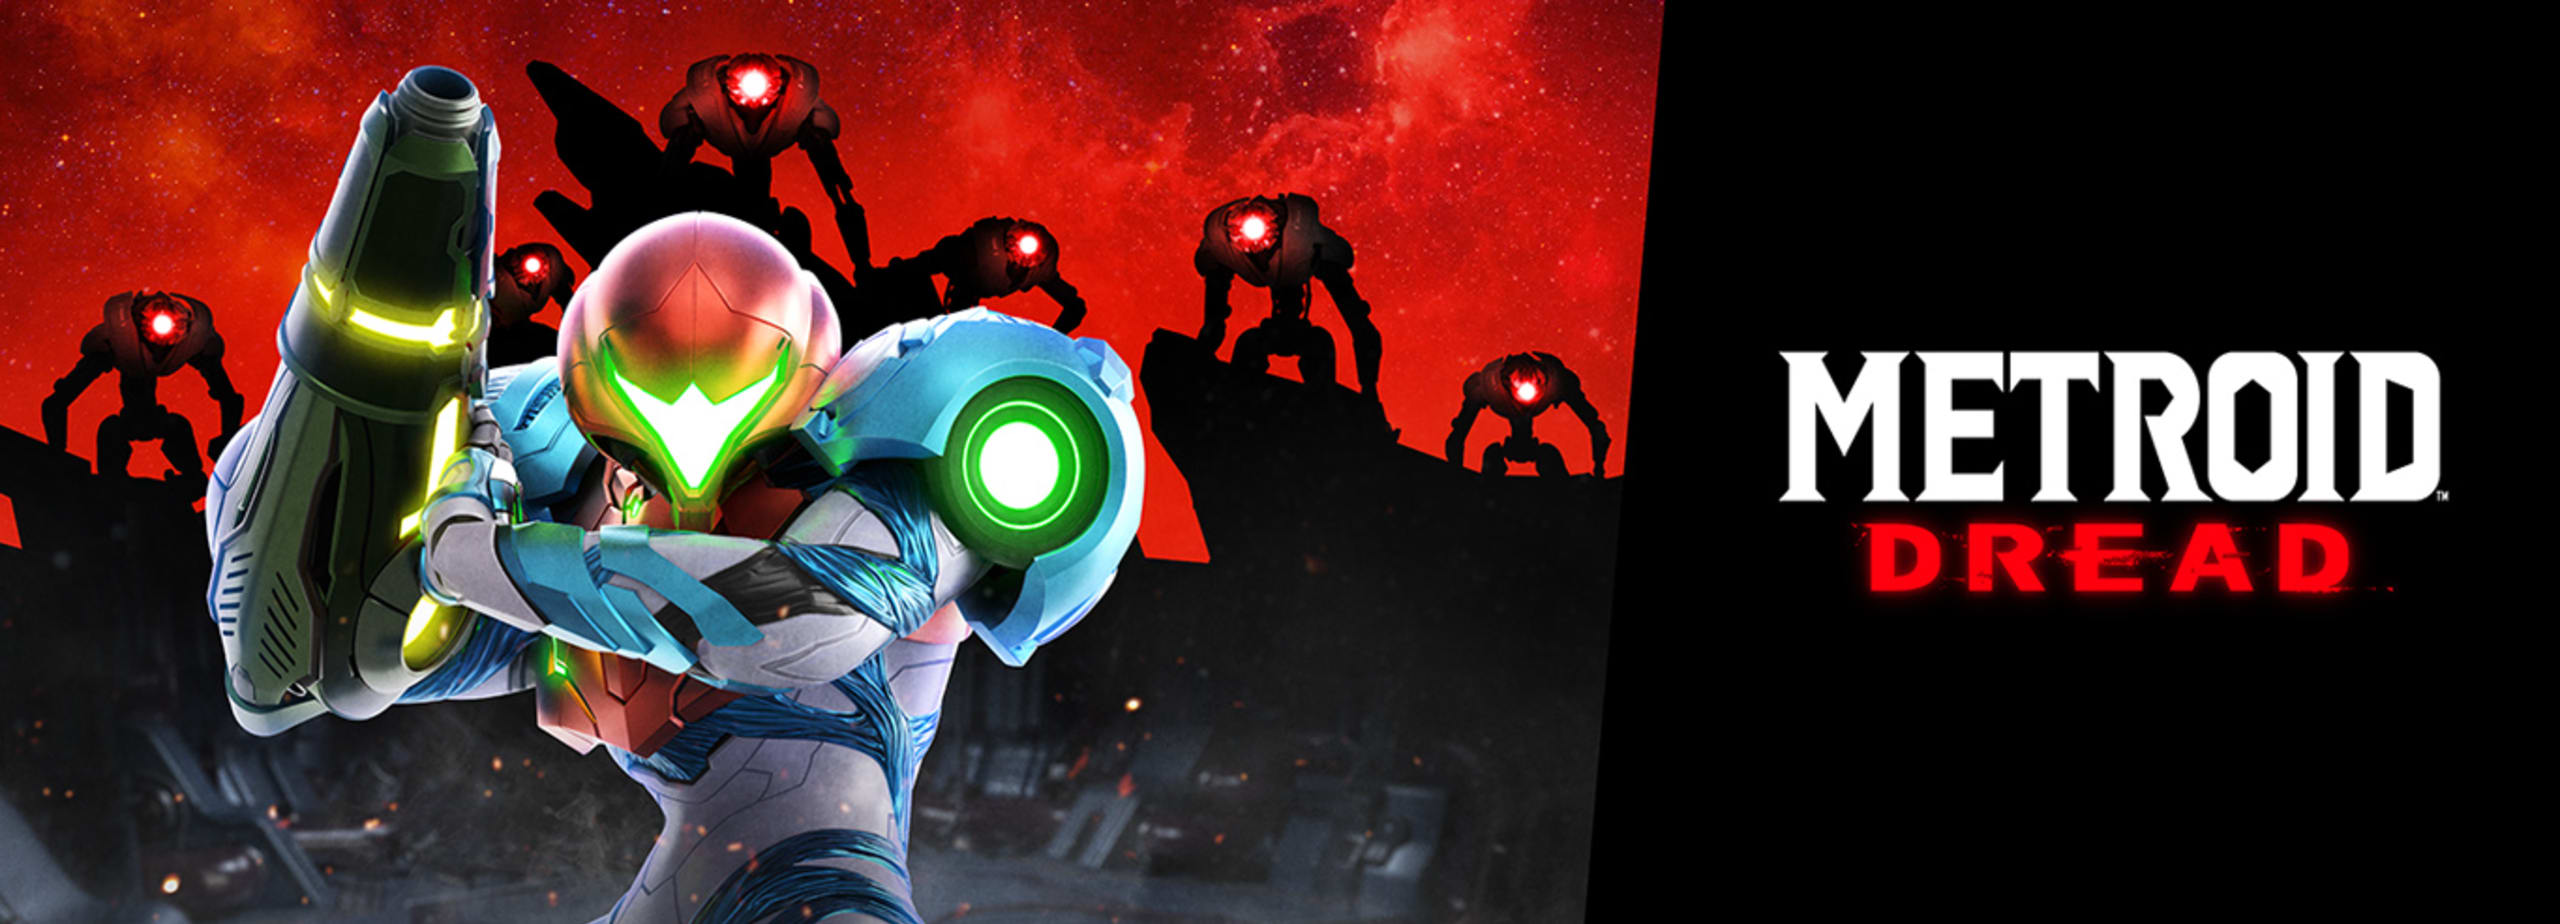 Metroid Dread - Pre-order digitally now–Play at launch